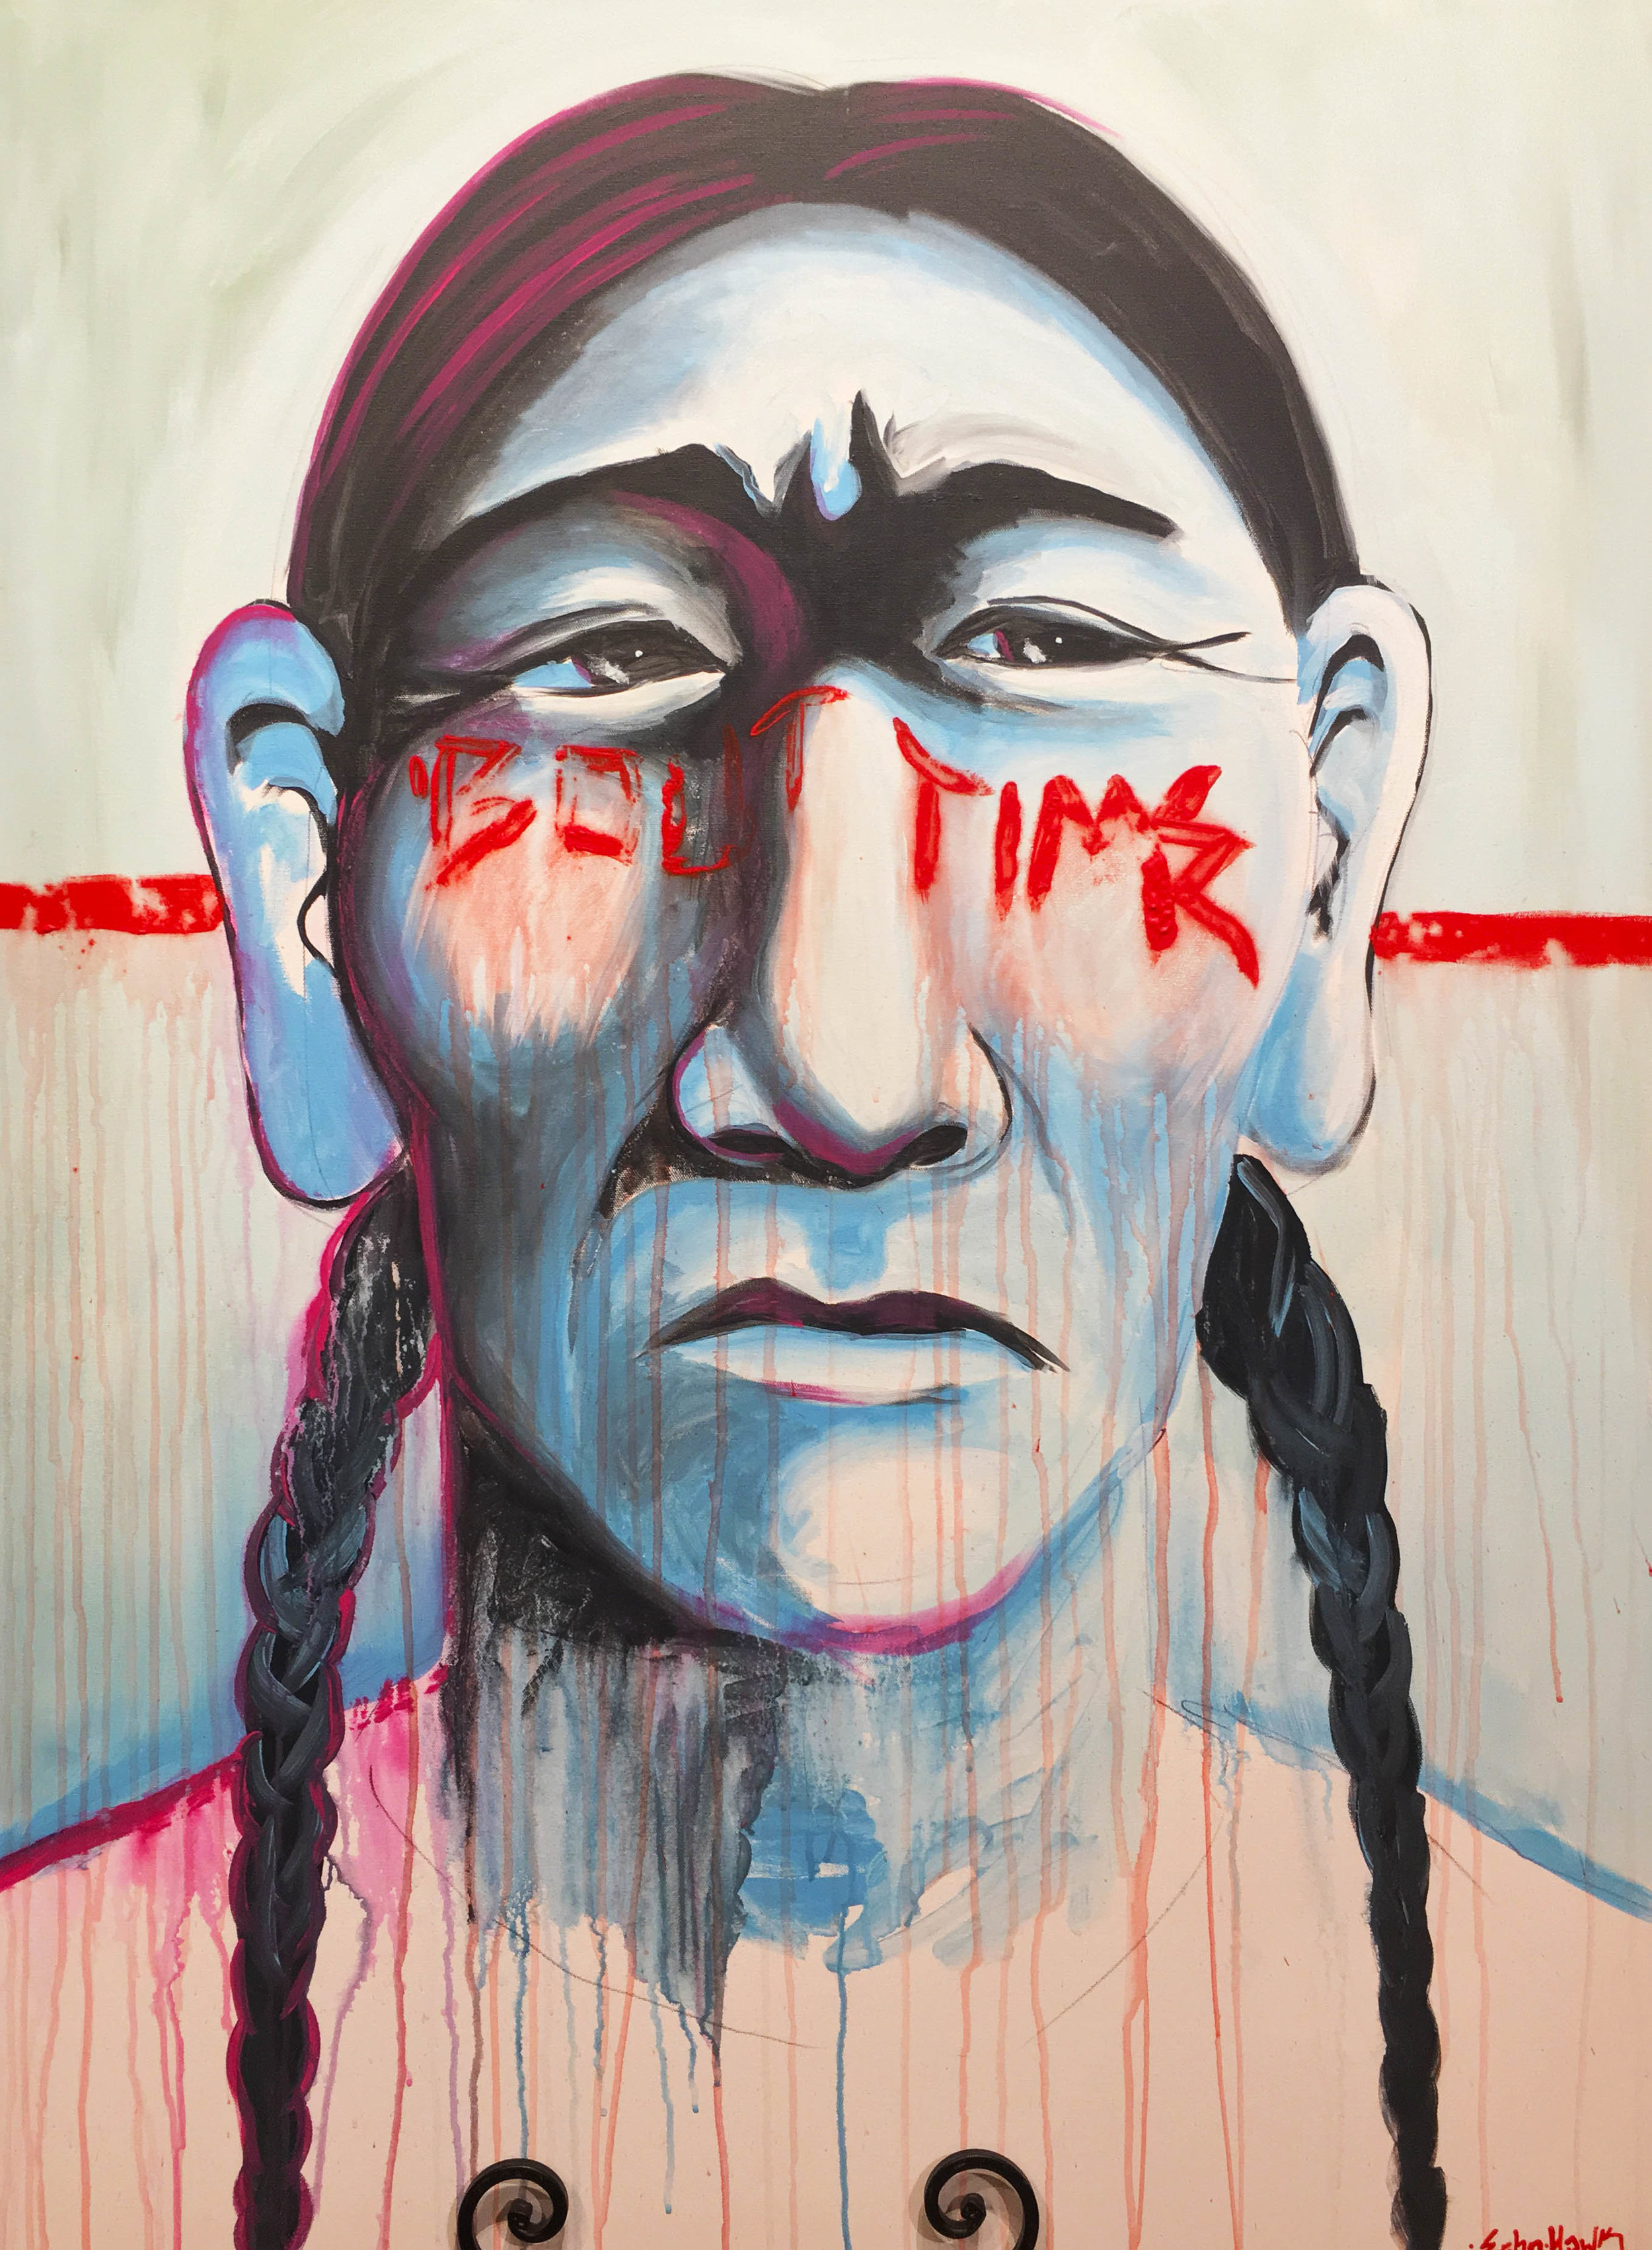 'Bout Time | acrylic on canvas | Bunky Echo-Hawk |created LIVE in 2018 at the Museum of Native American History Museum Cultural Symposium